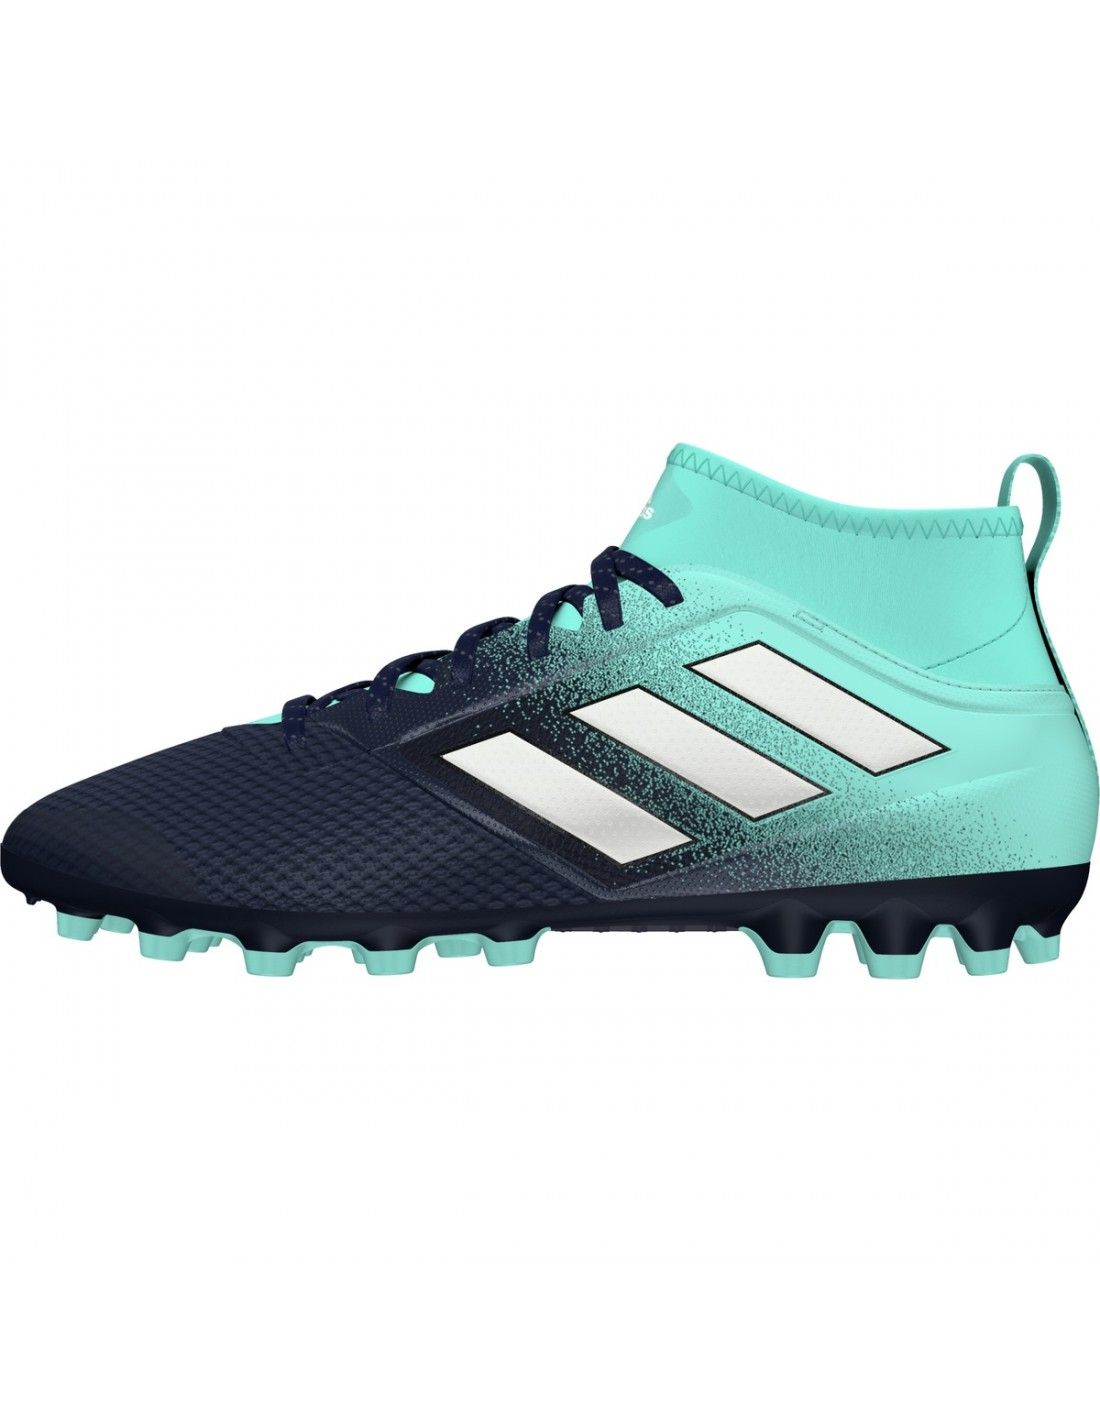 newest c3527 37b7f adidas ace 17.3 ag